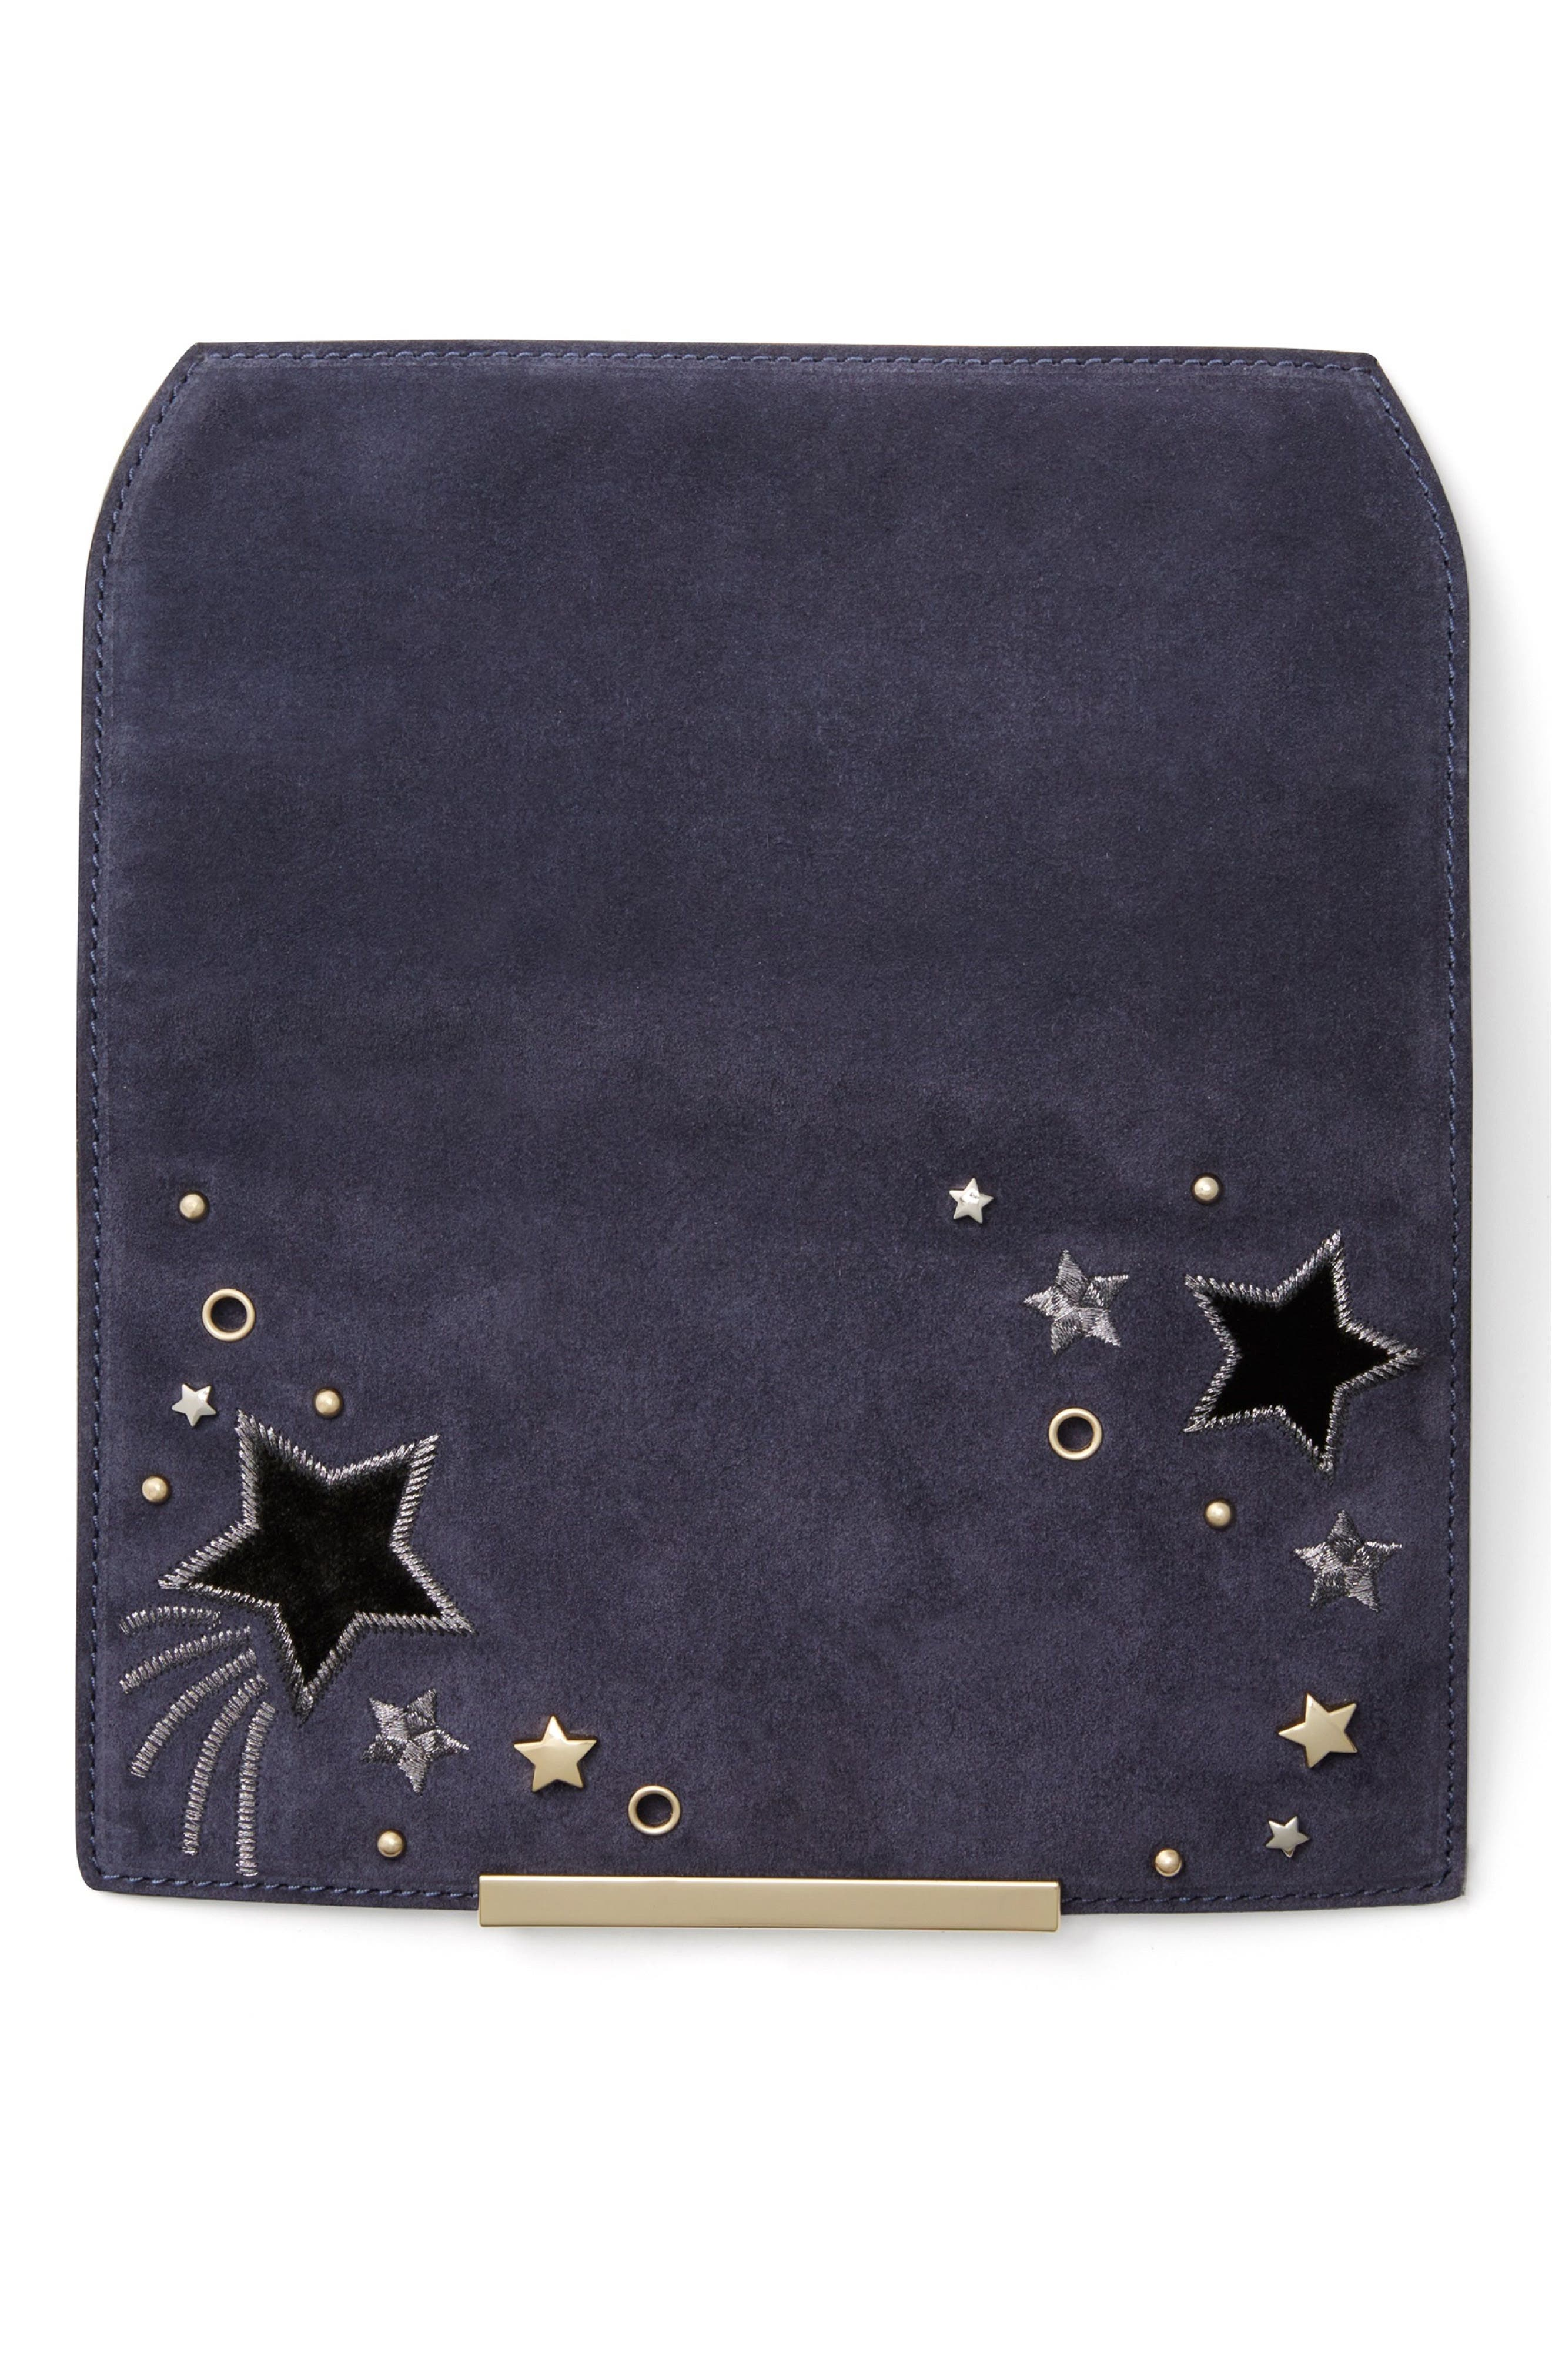 make it mine star embellished snap-on accent flap,                             Alternate thumbnail 2, color,